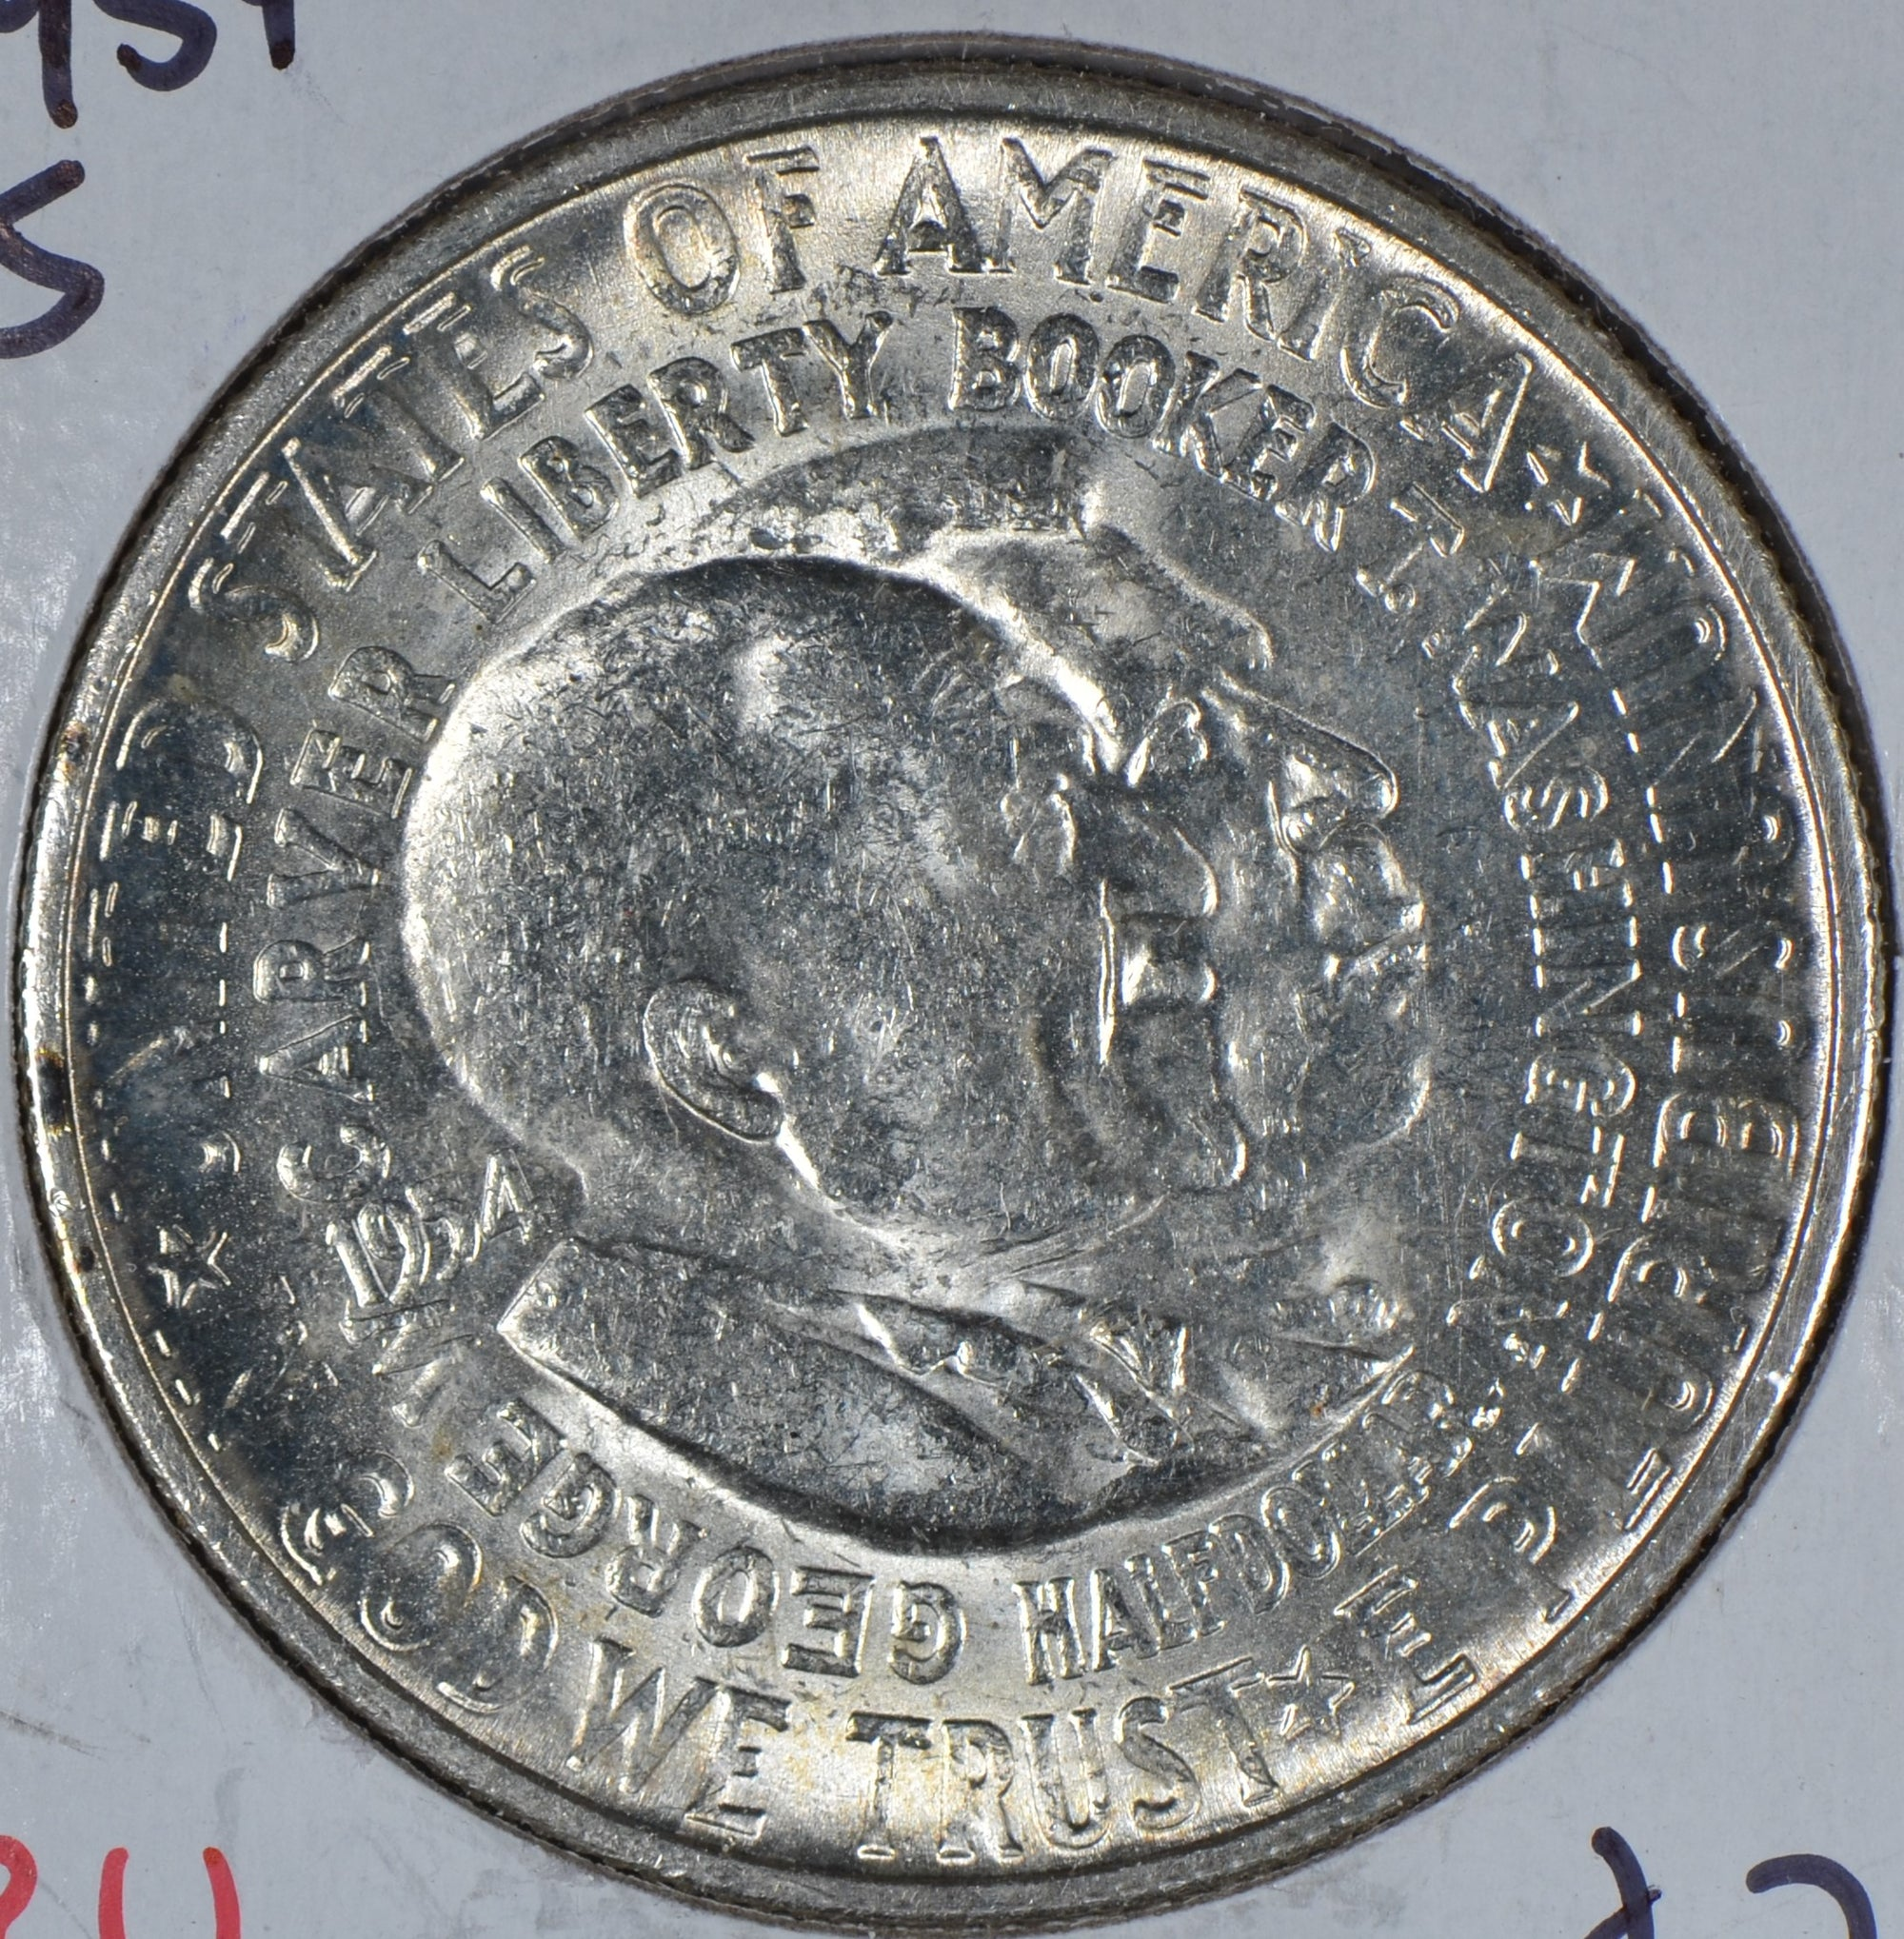 1954-S Washington Carver Silver Commemorative Half Dollar Mint State